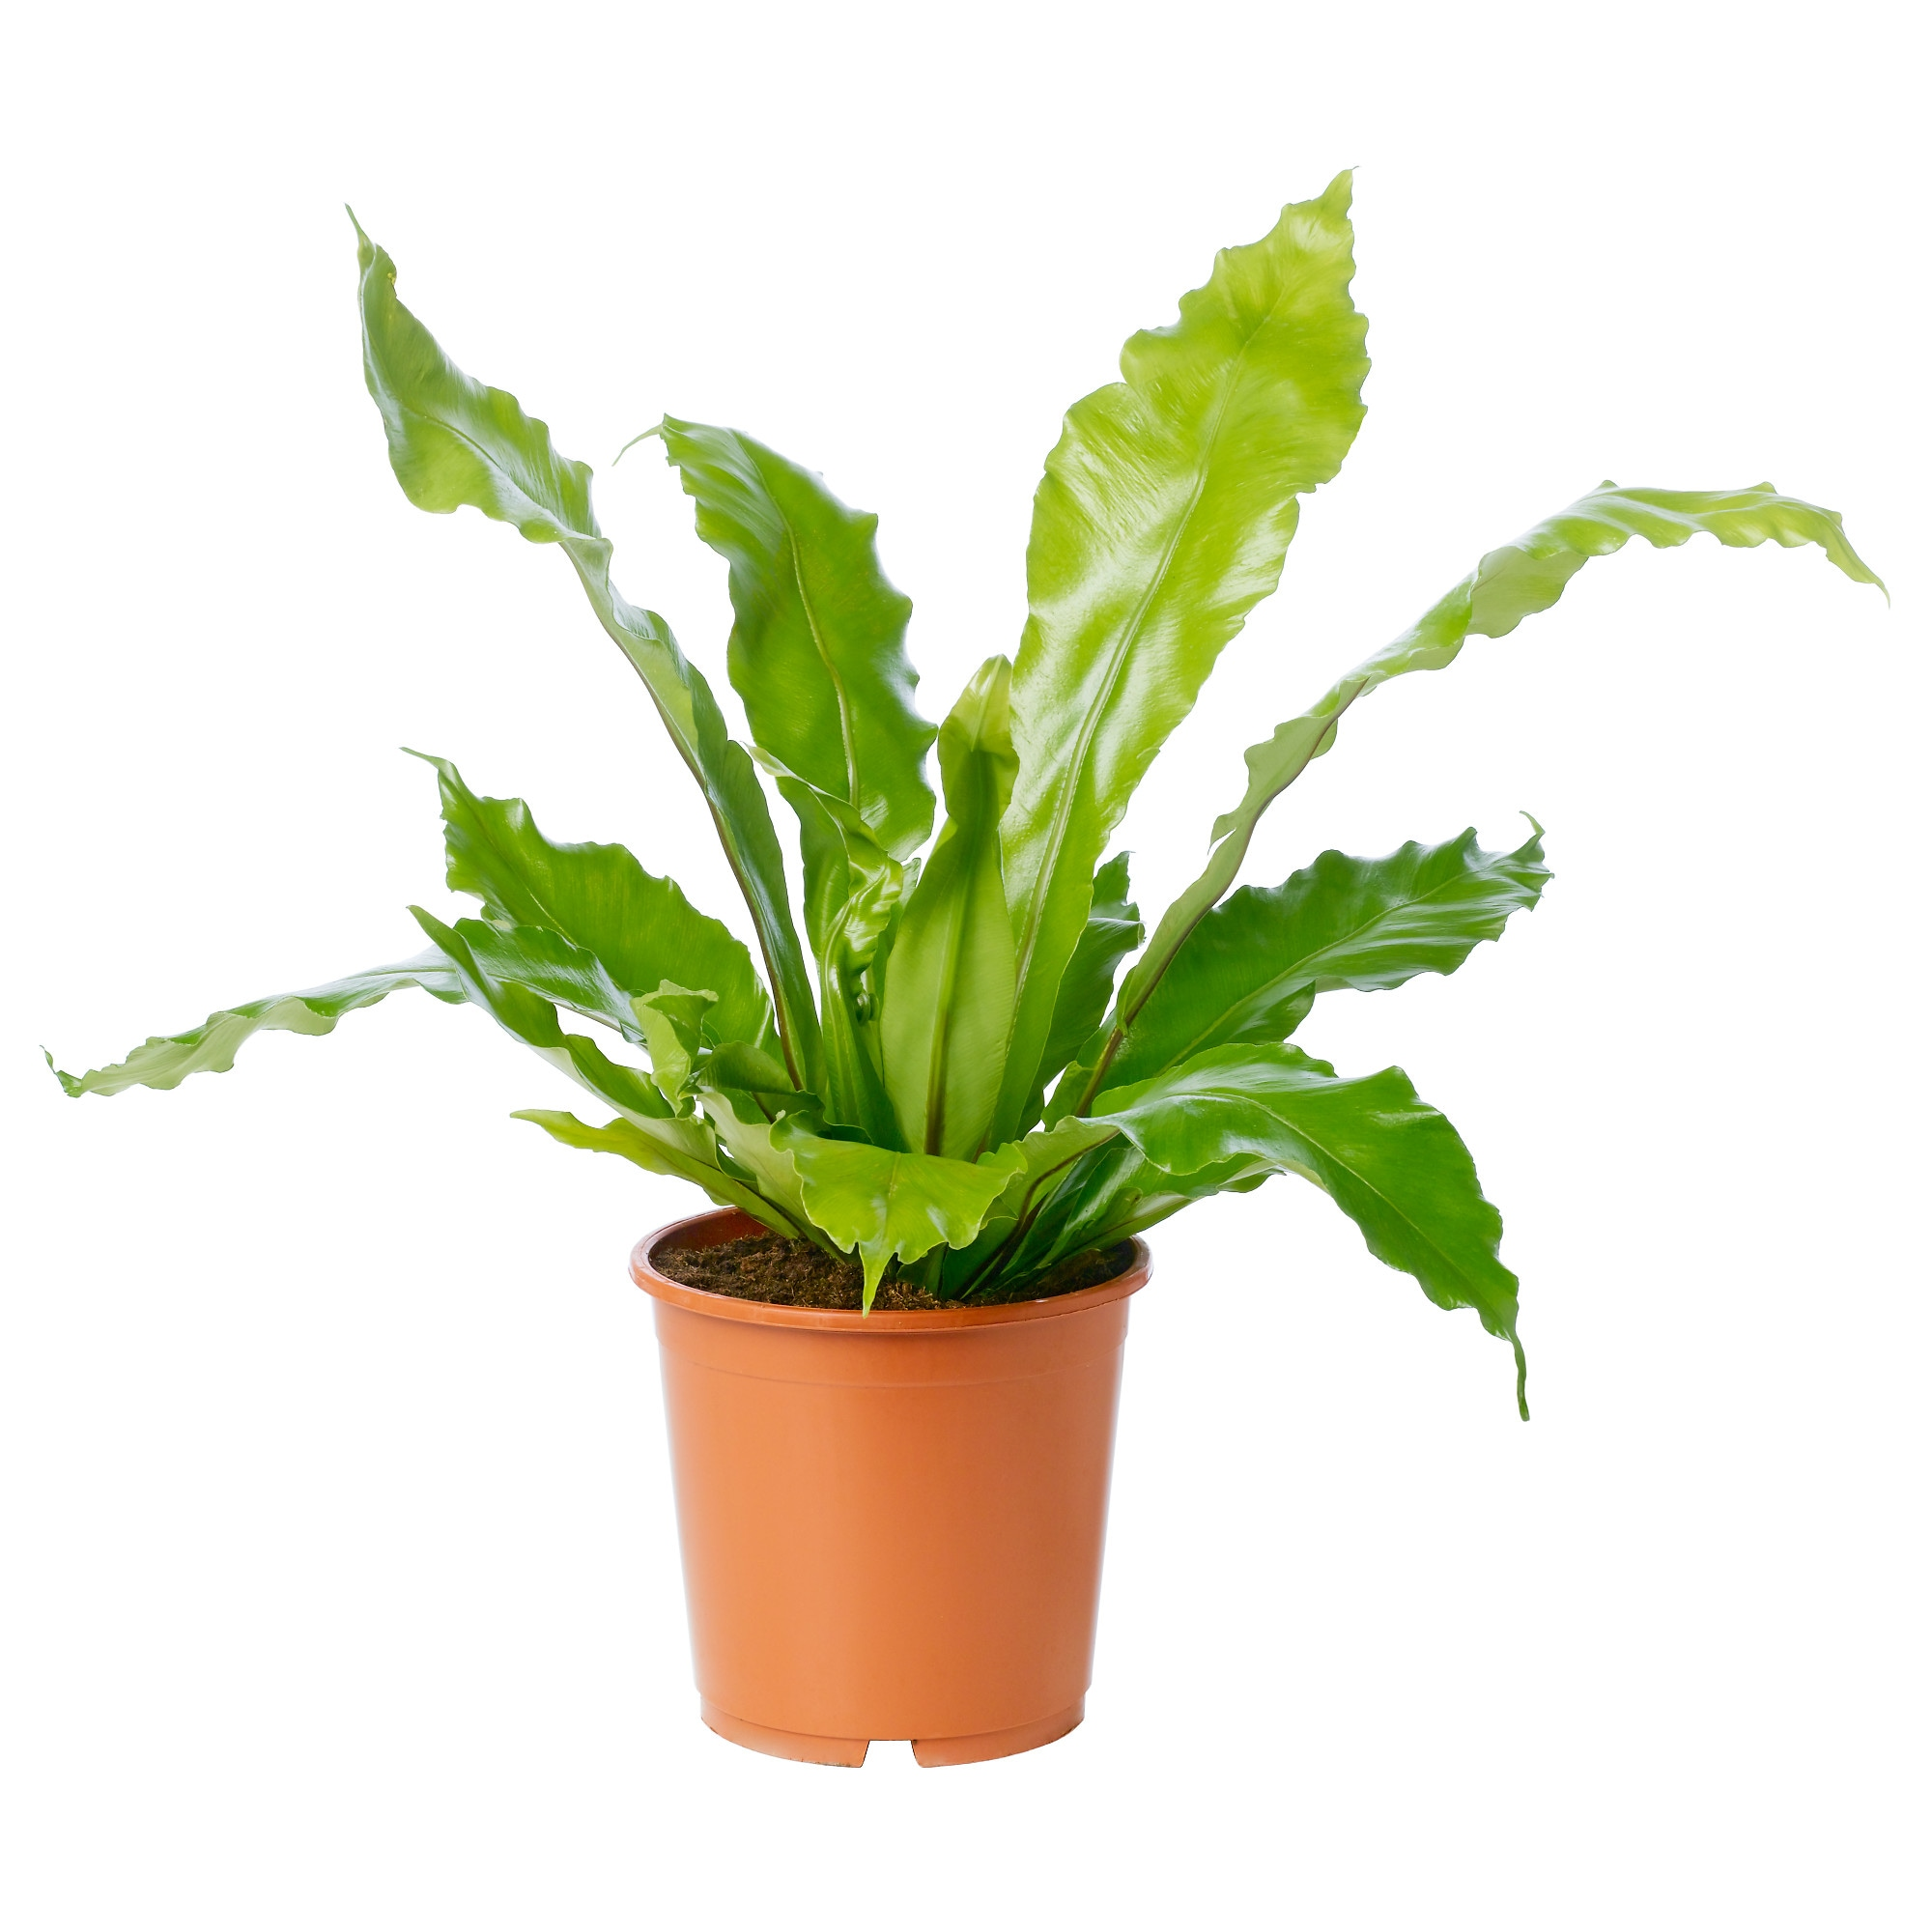 Small Pot Plants 100 100 Small Pot Plants Philodendron